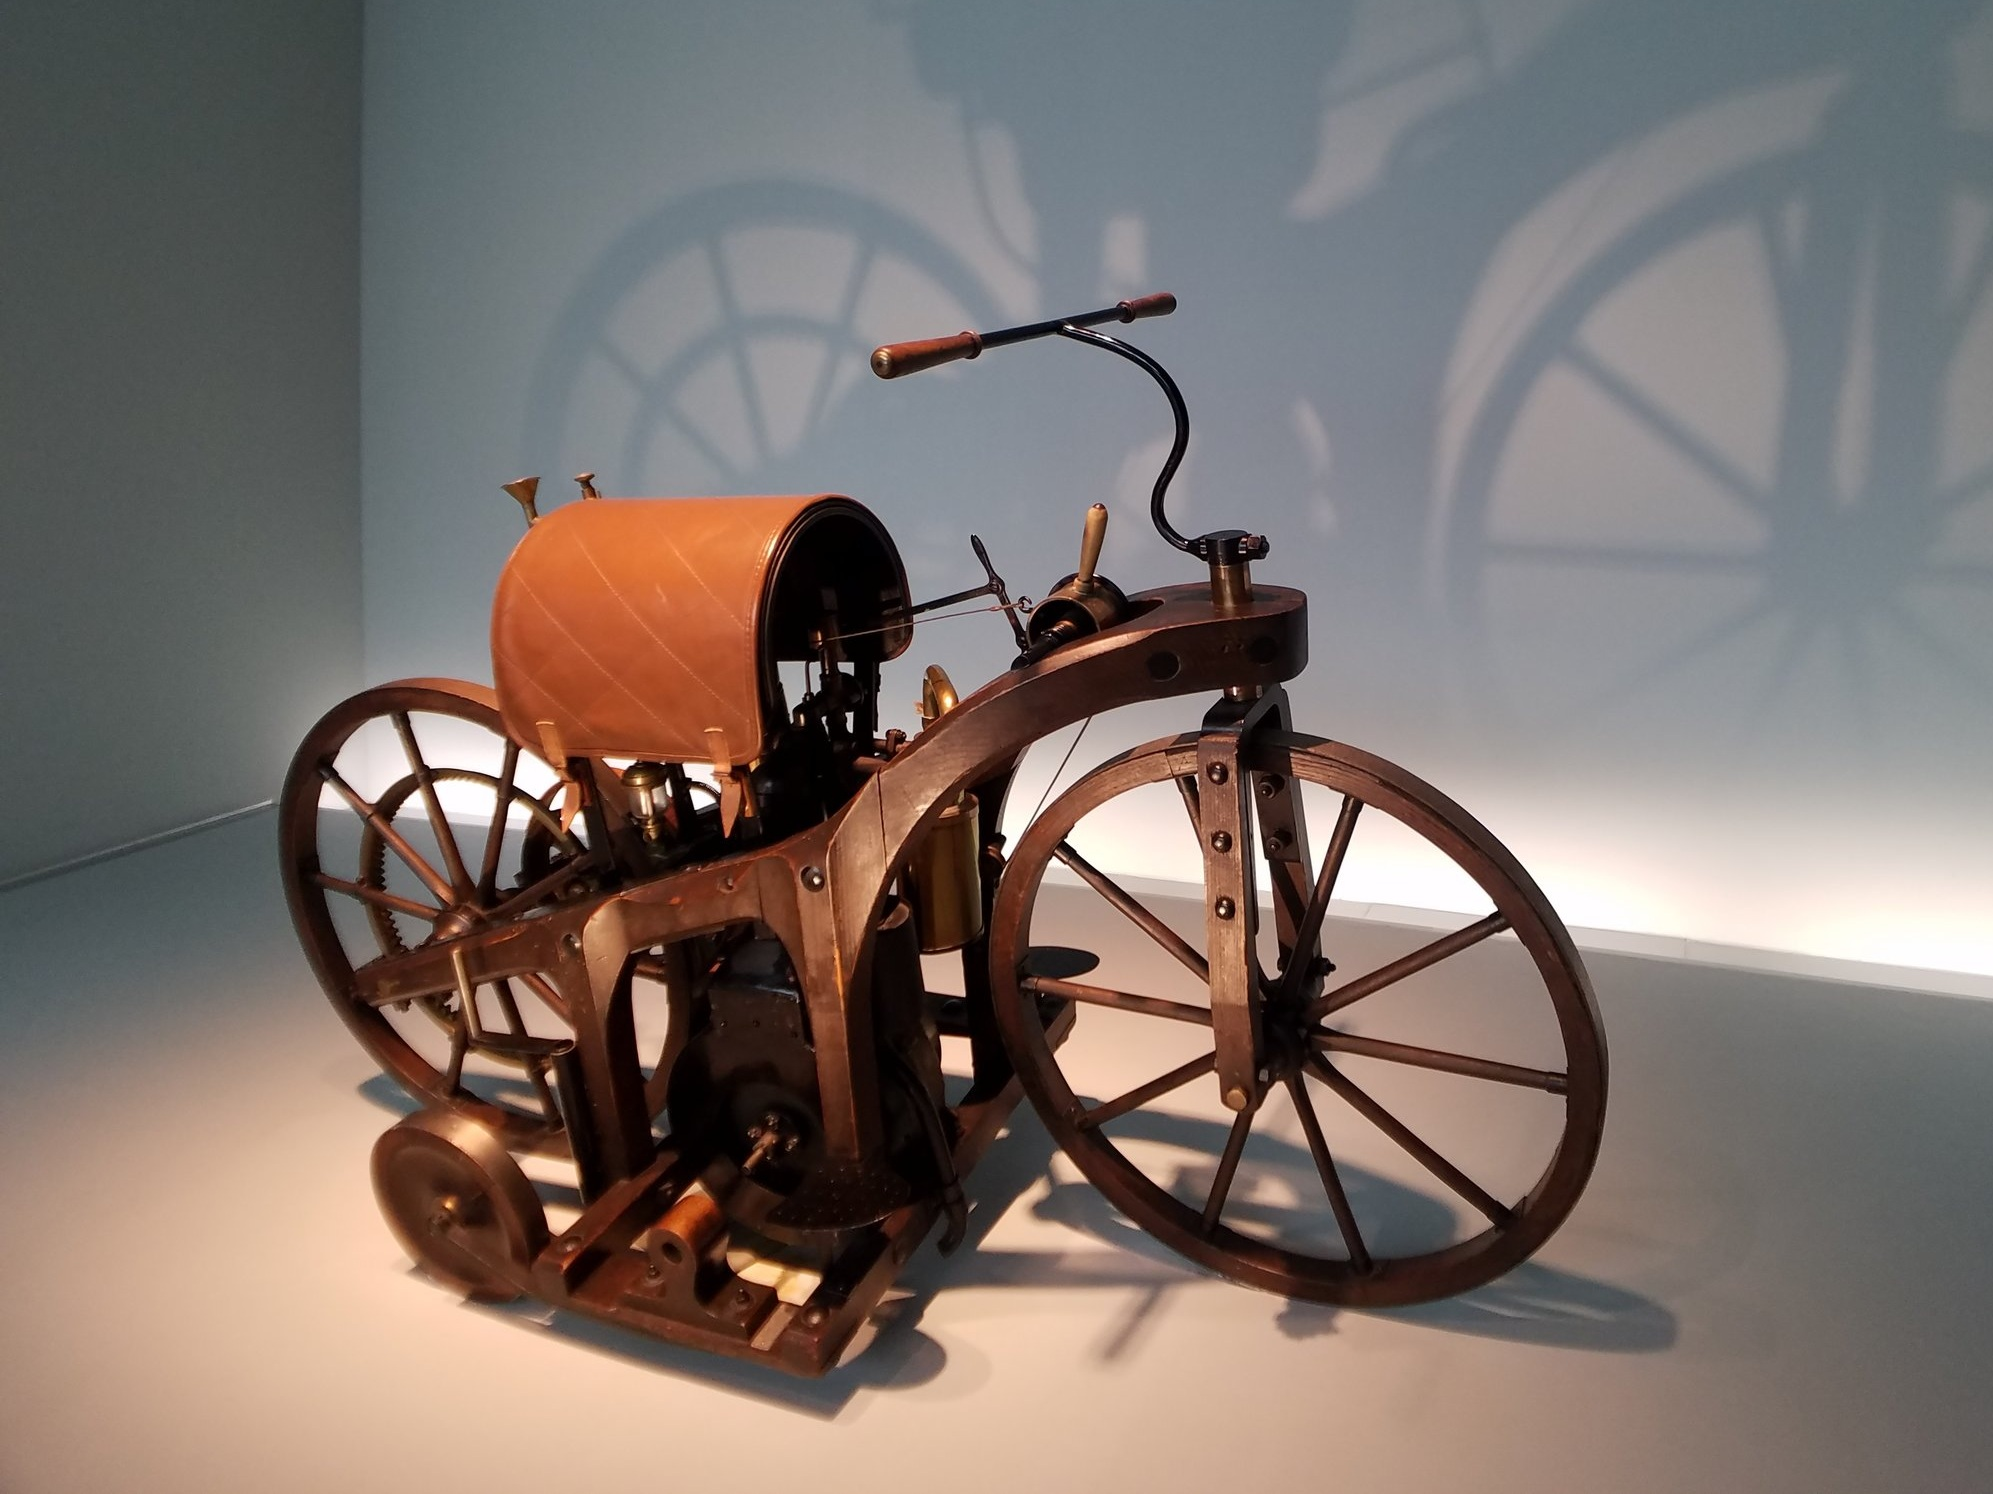 A replica of the 1885 Daimler Petroleum Reitwagen within the Mercedes-Benz museum in Stuttgart, Germany.